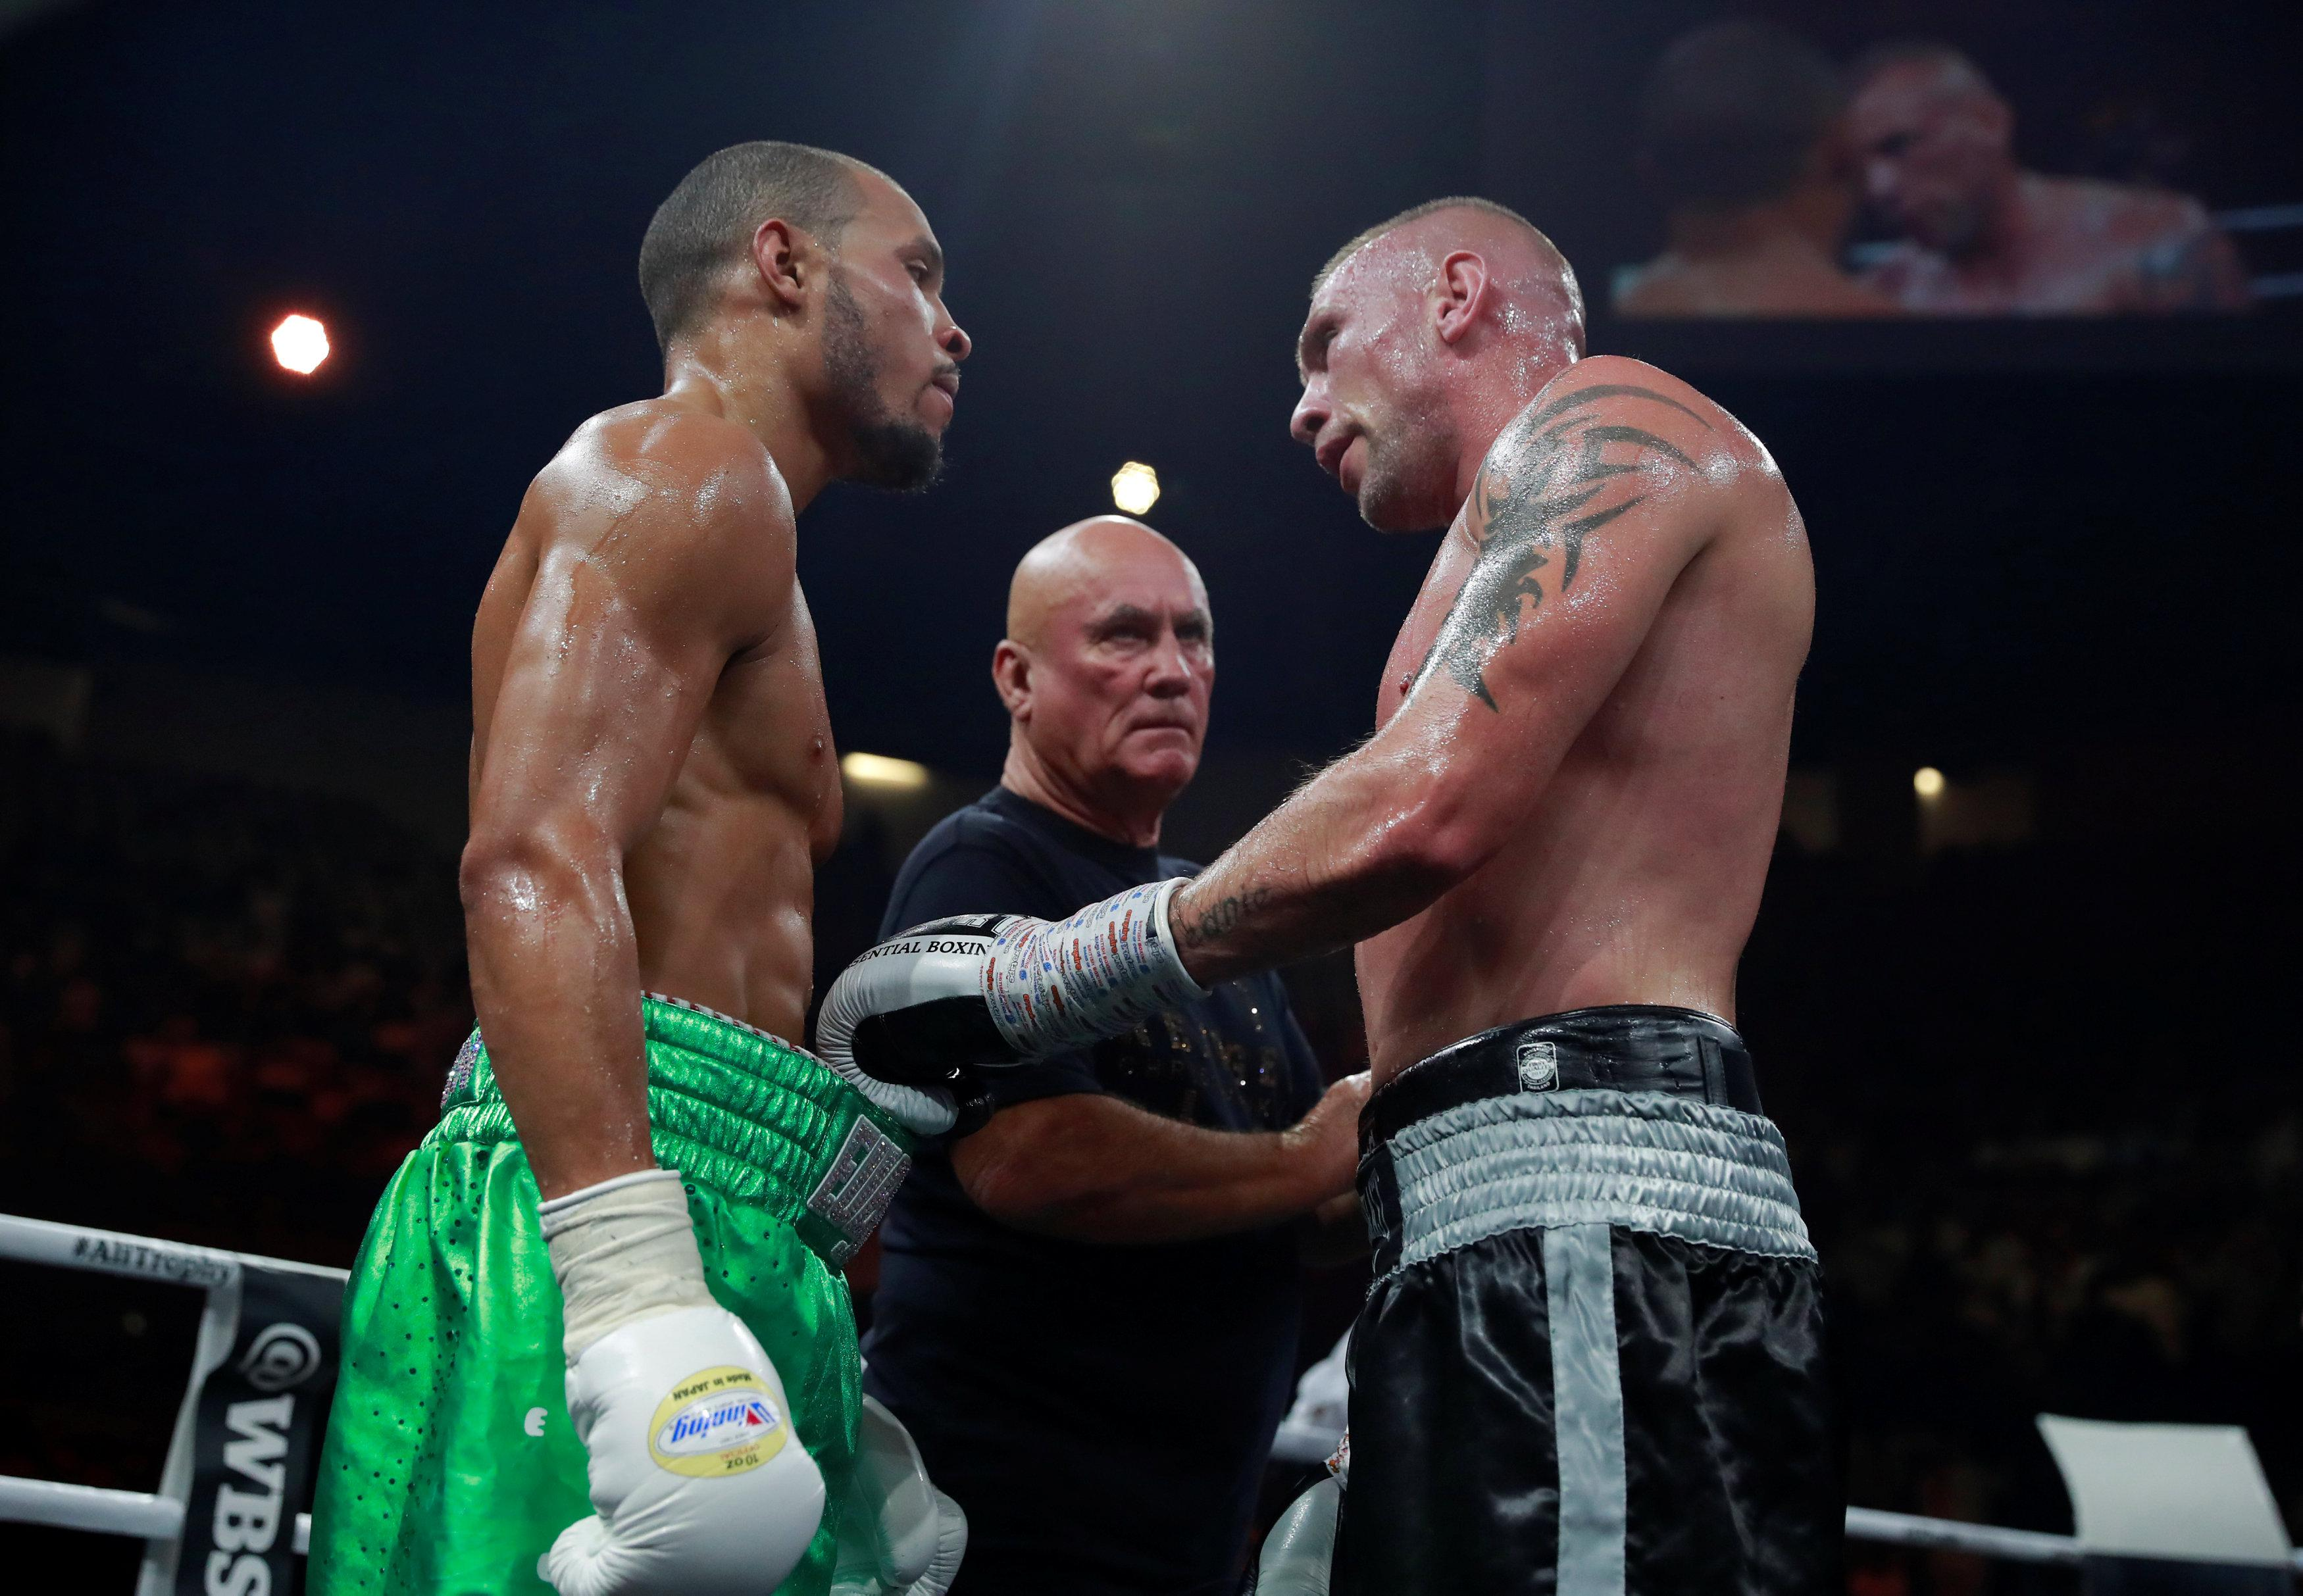 Tensions threatened to boil over after the fight between McDonagh and Eubank Jr